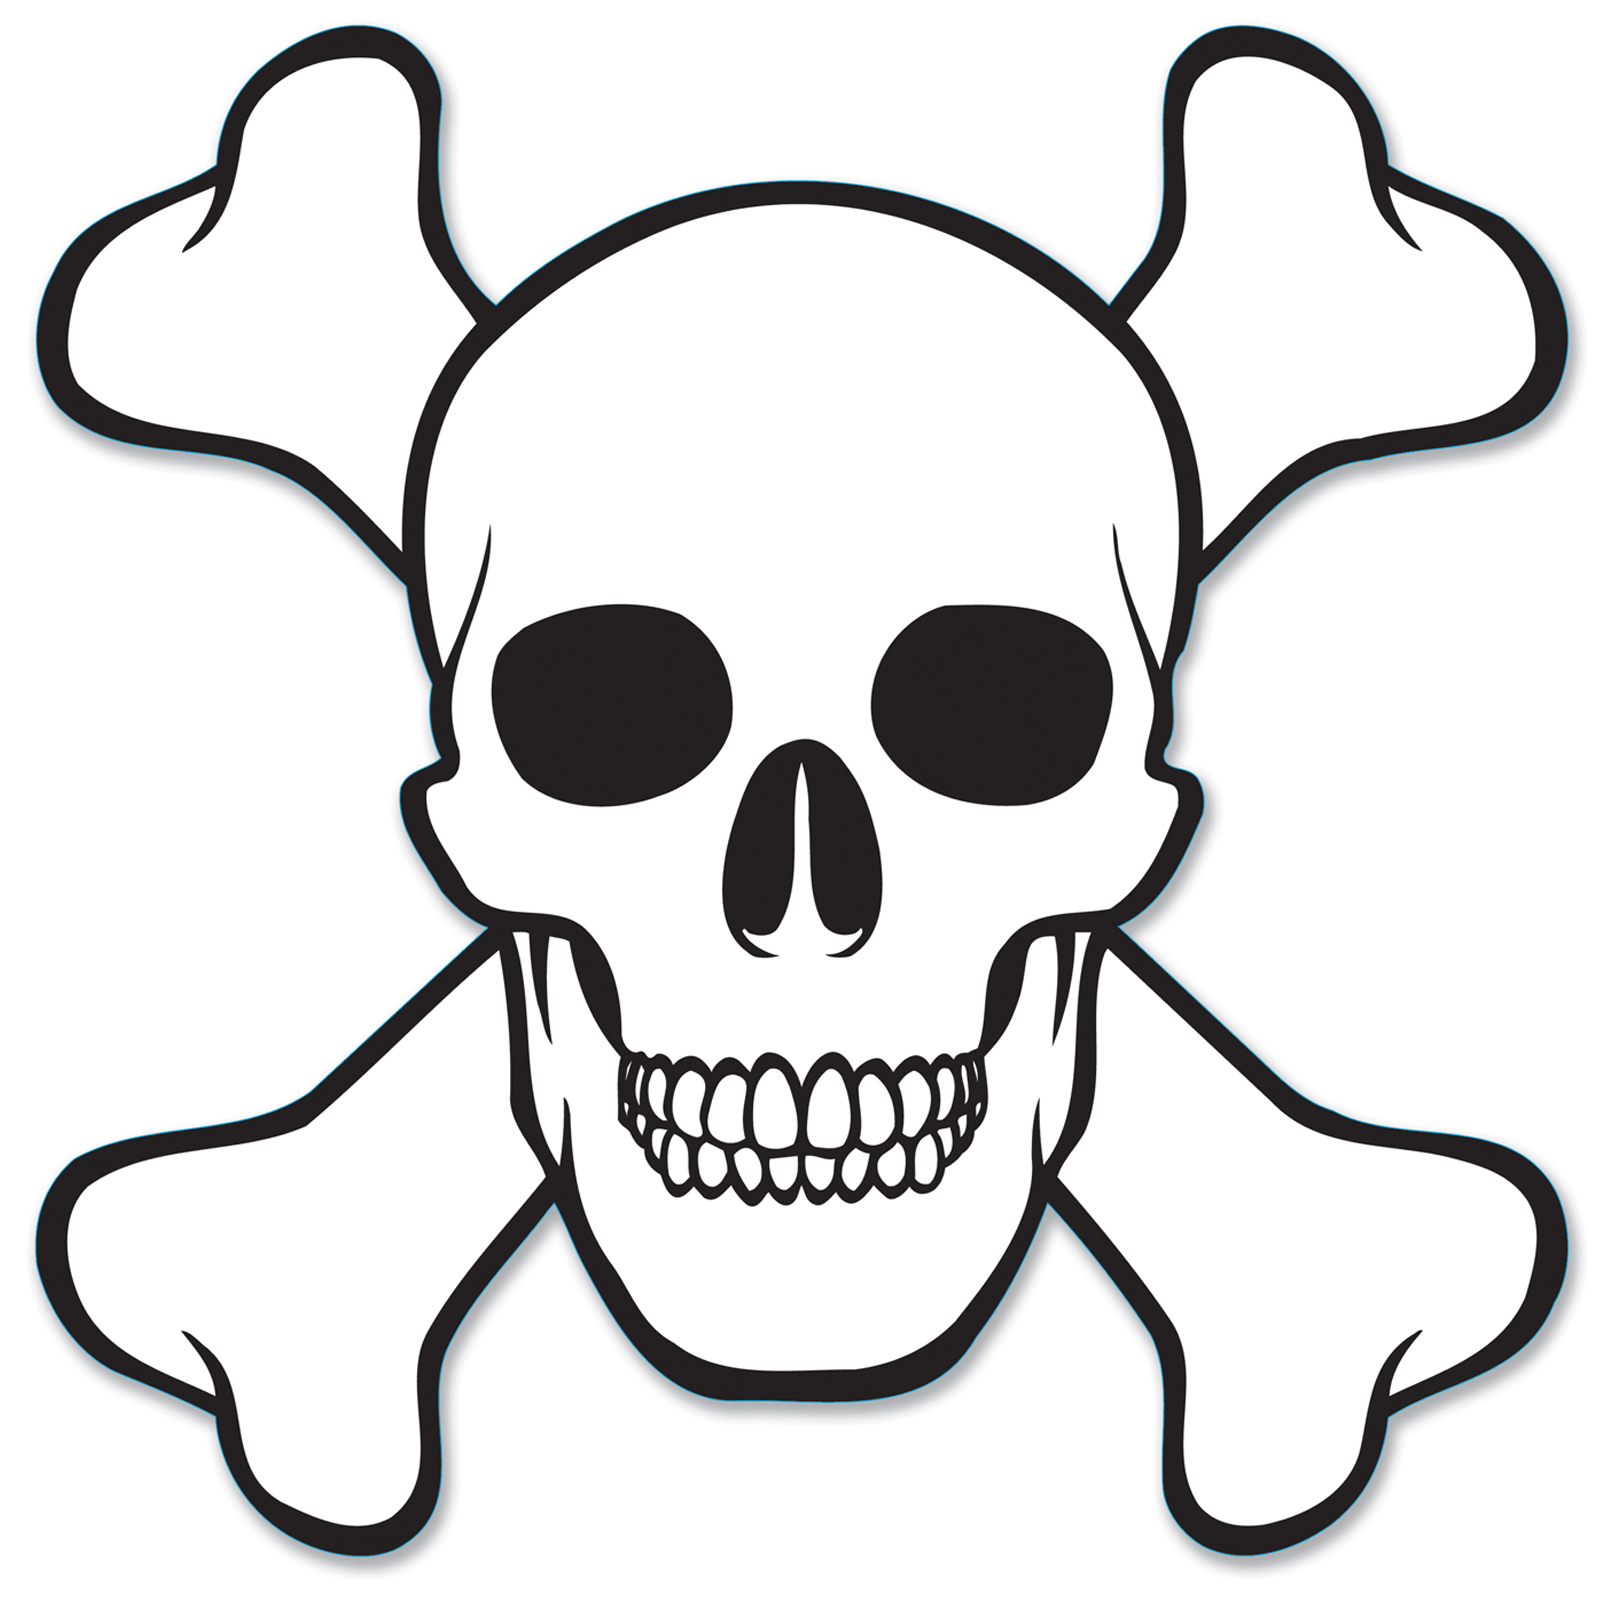 skull and crossbones silhouette at getdrawings com free for rh getdrawings com skull and crossbones clip art vector skull and bones clip art free